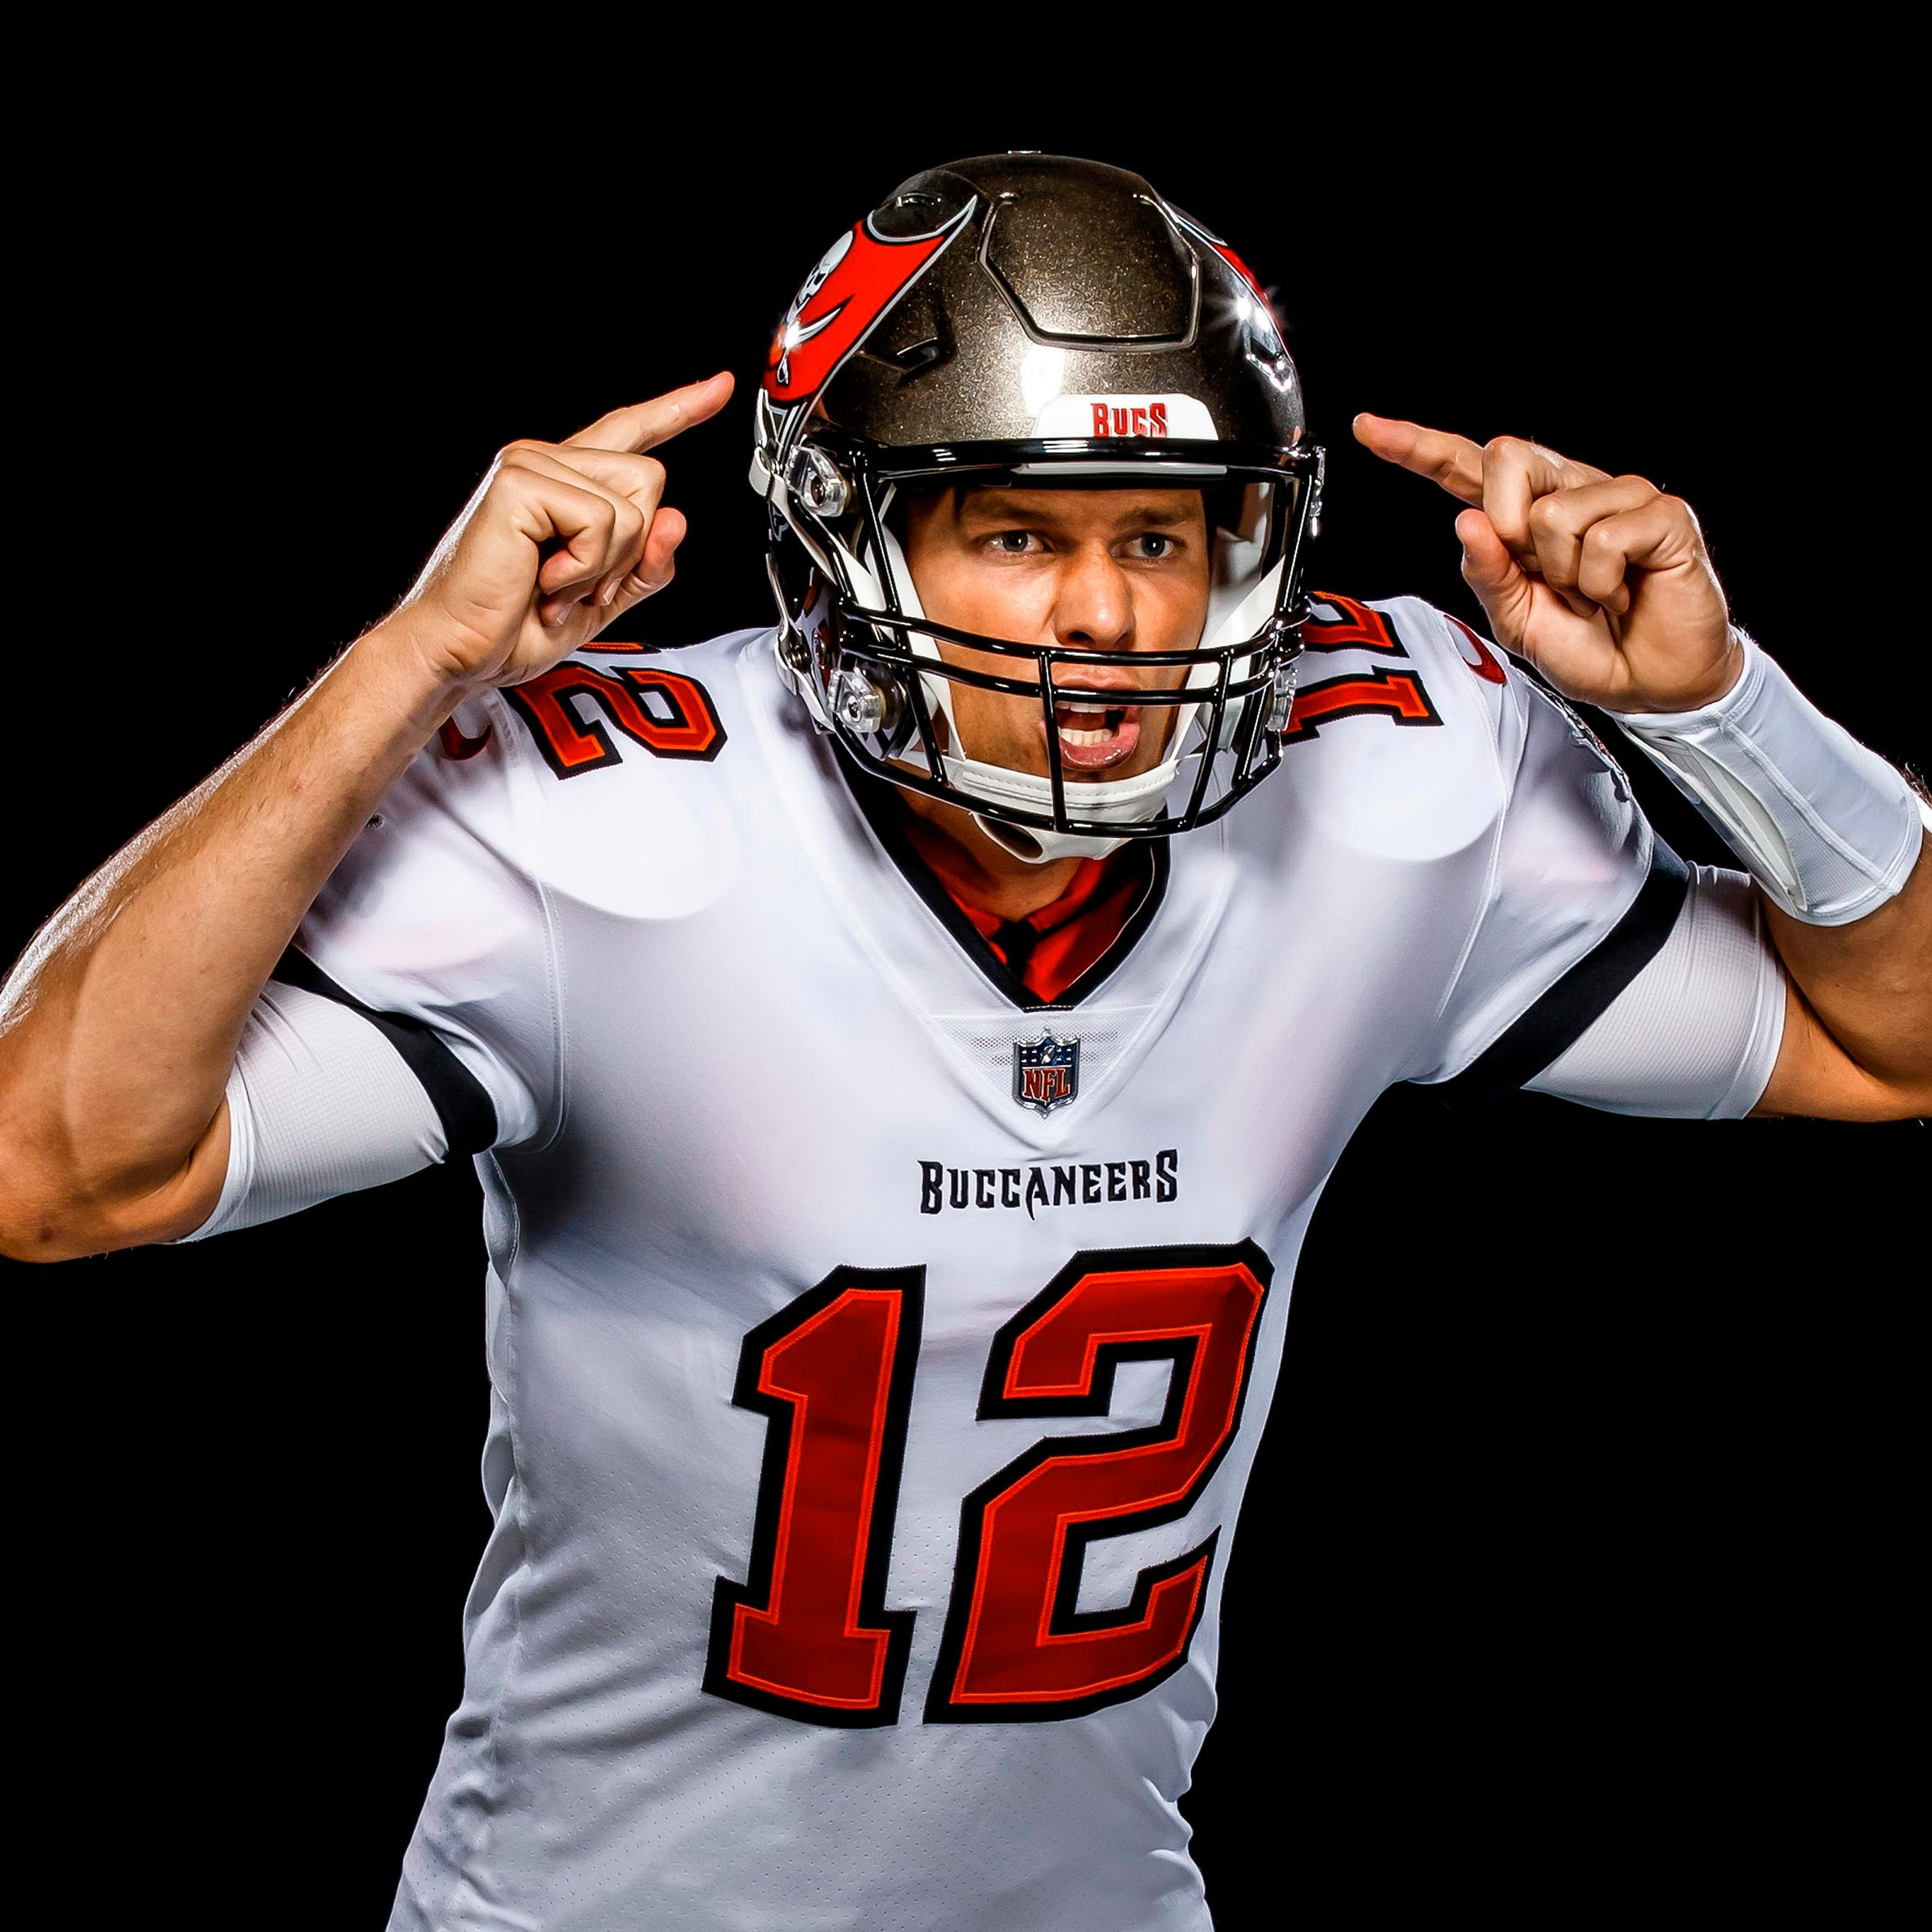 tom brady buccaneers release first photos of qb in new uniform tom brady buccaneers release first